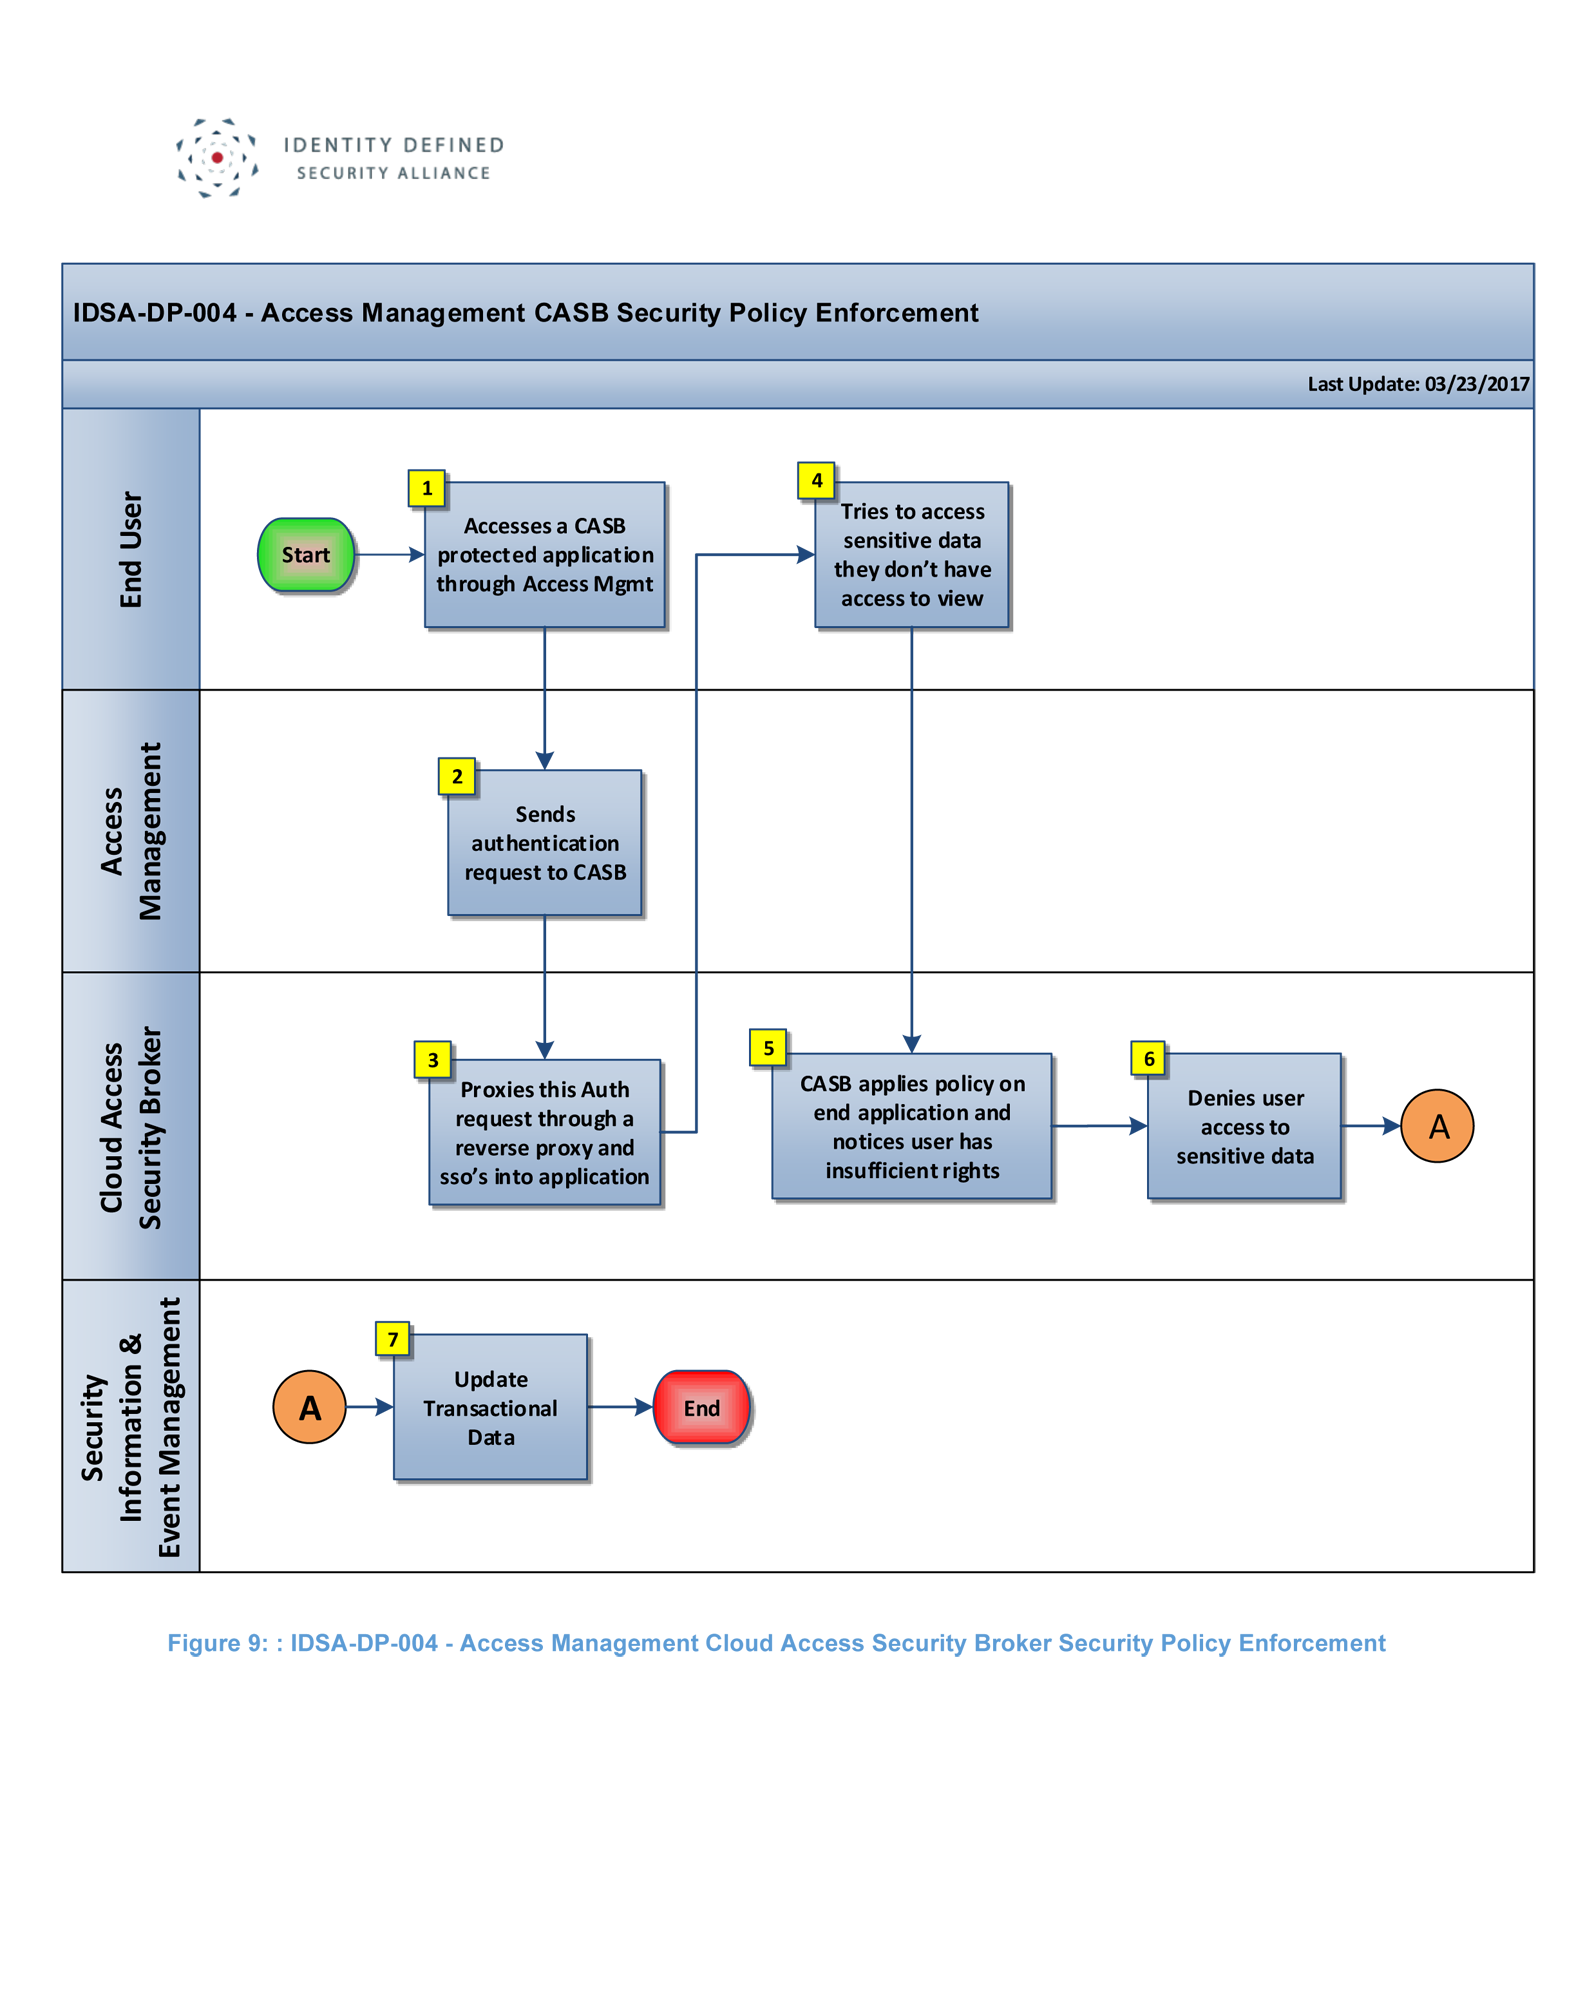 Idsa Dp 004 Access Management Cloud Security Broker Data Policy Click For Full Size